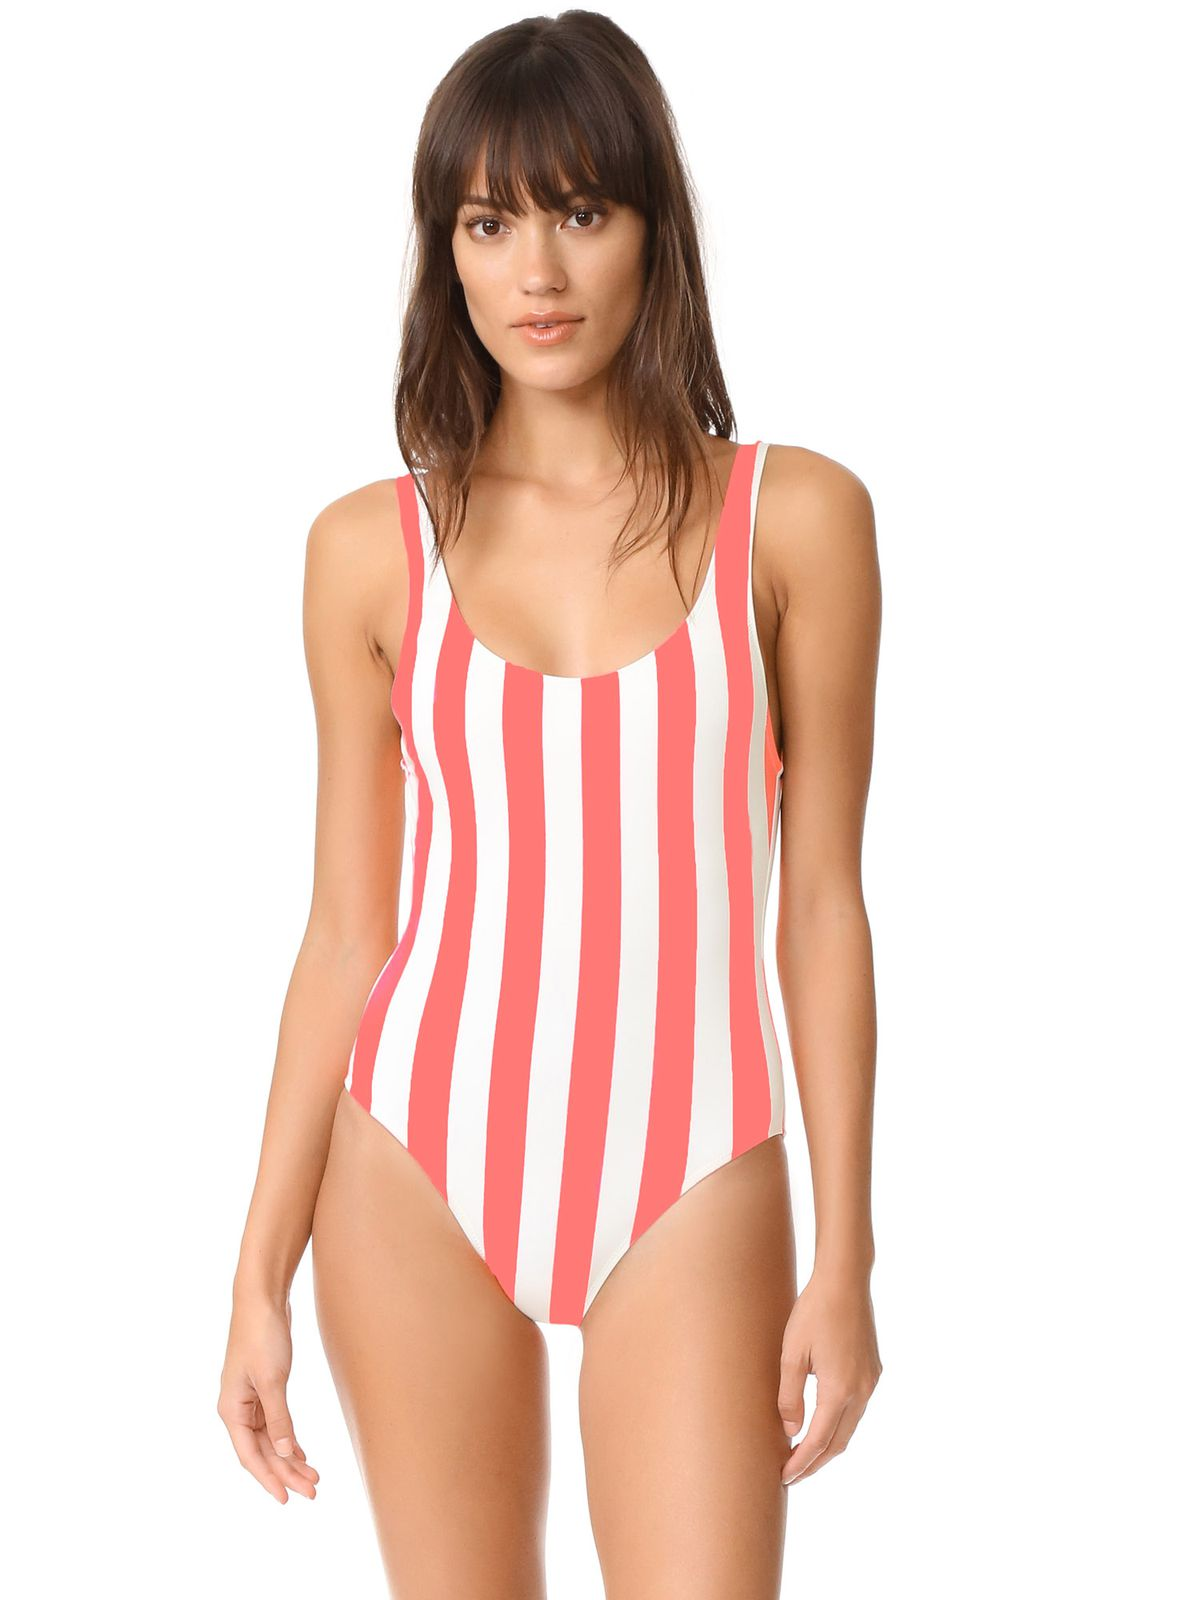 Solid and Striped The Anne Marie One Piece, $117.60